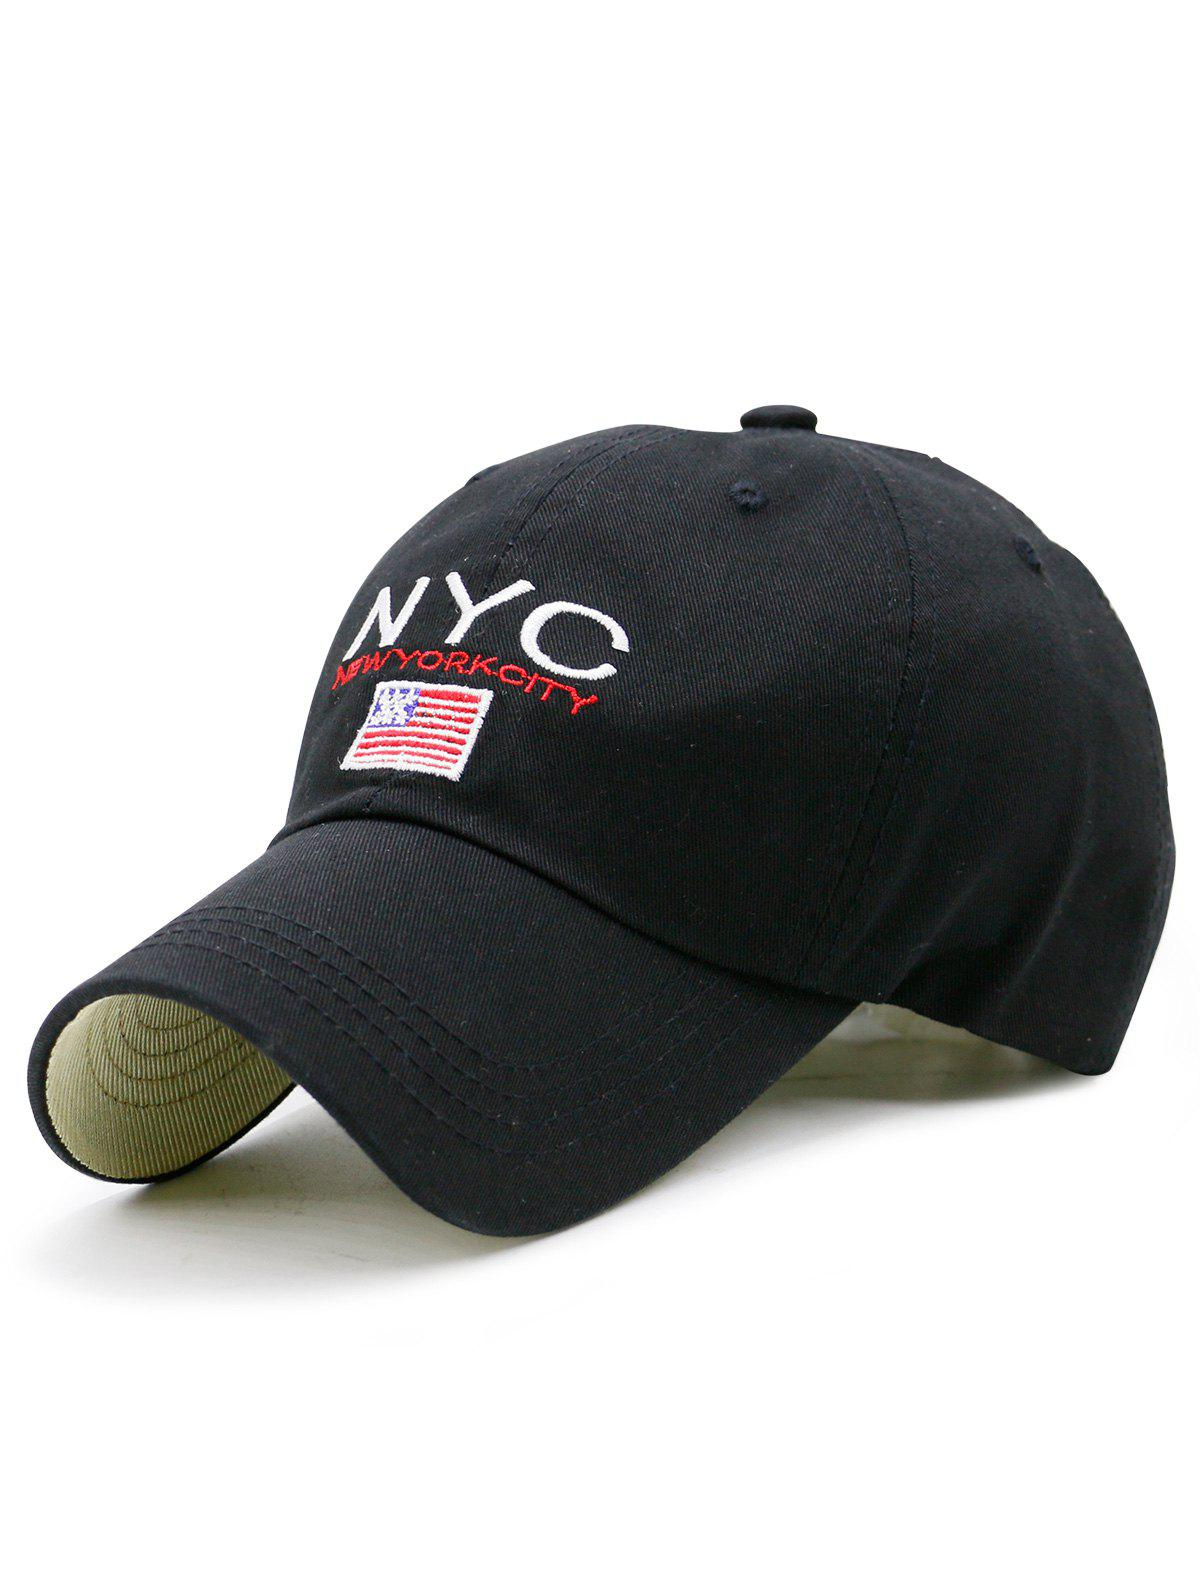 NYC and Flag Embroidered Baseball Hat - BLACK